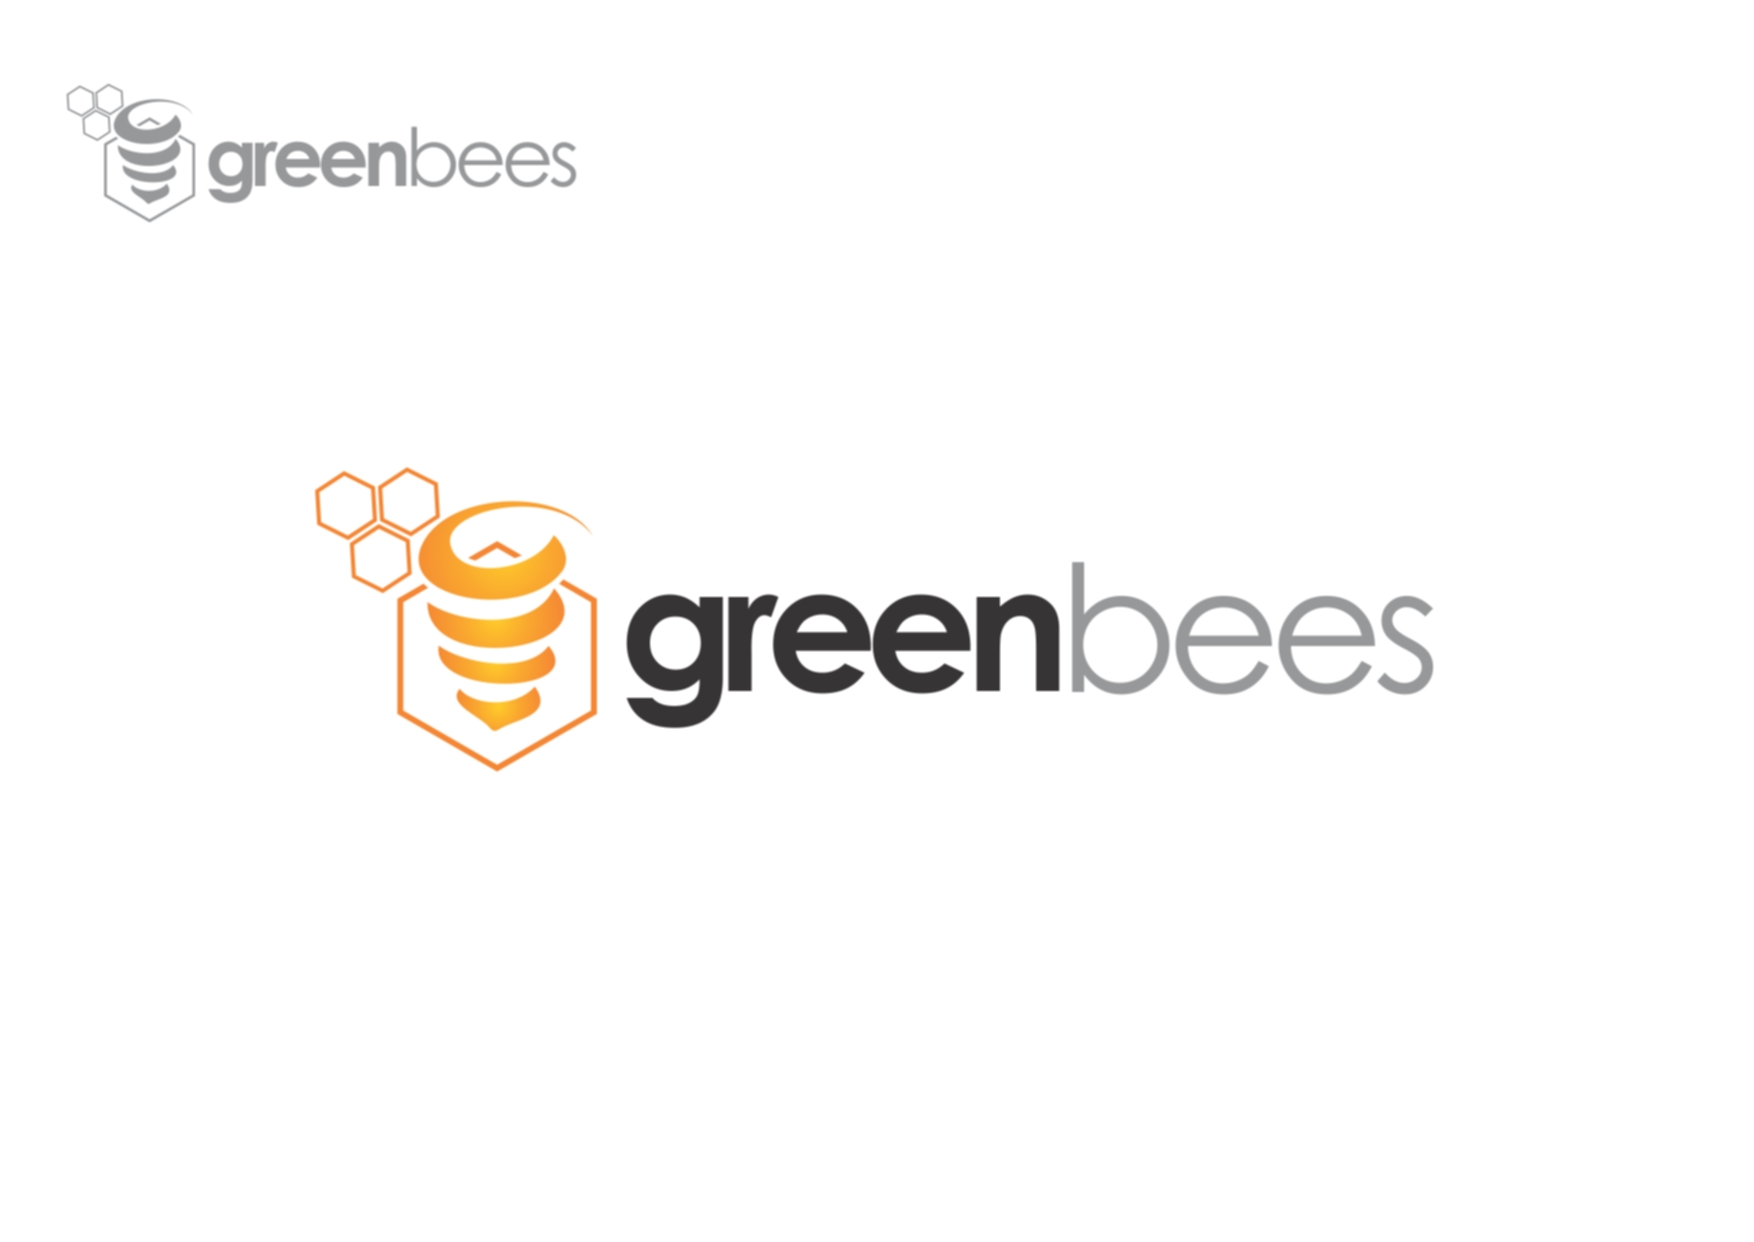 Logo Design by Private User - Entry No. 25 in the Logo Design Contest Greenbees Logo Design.